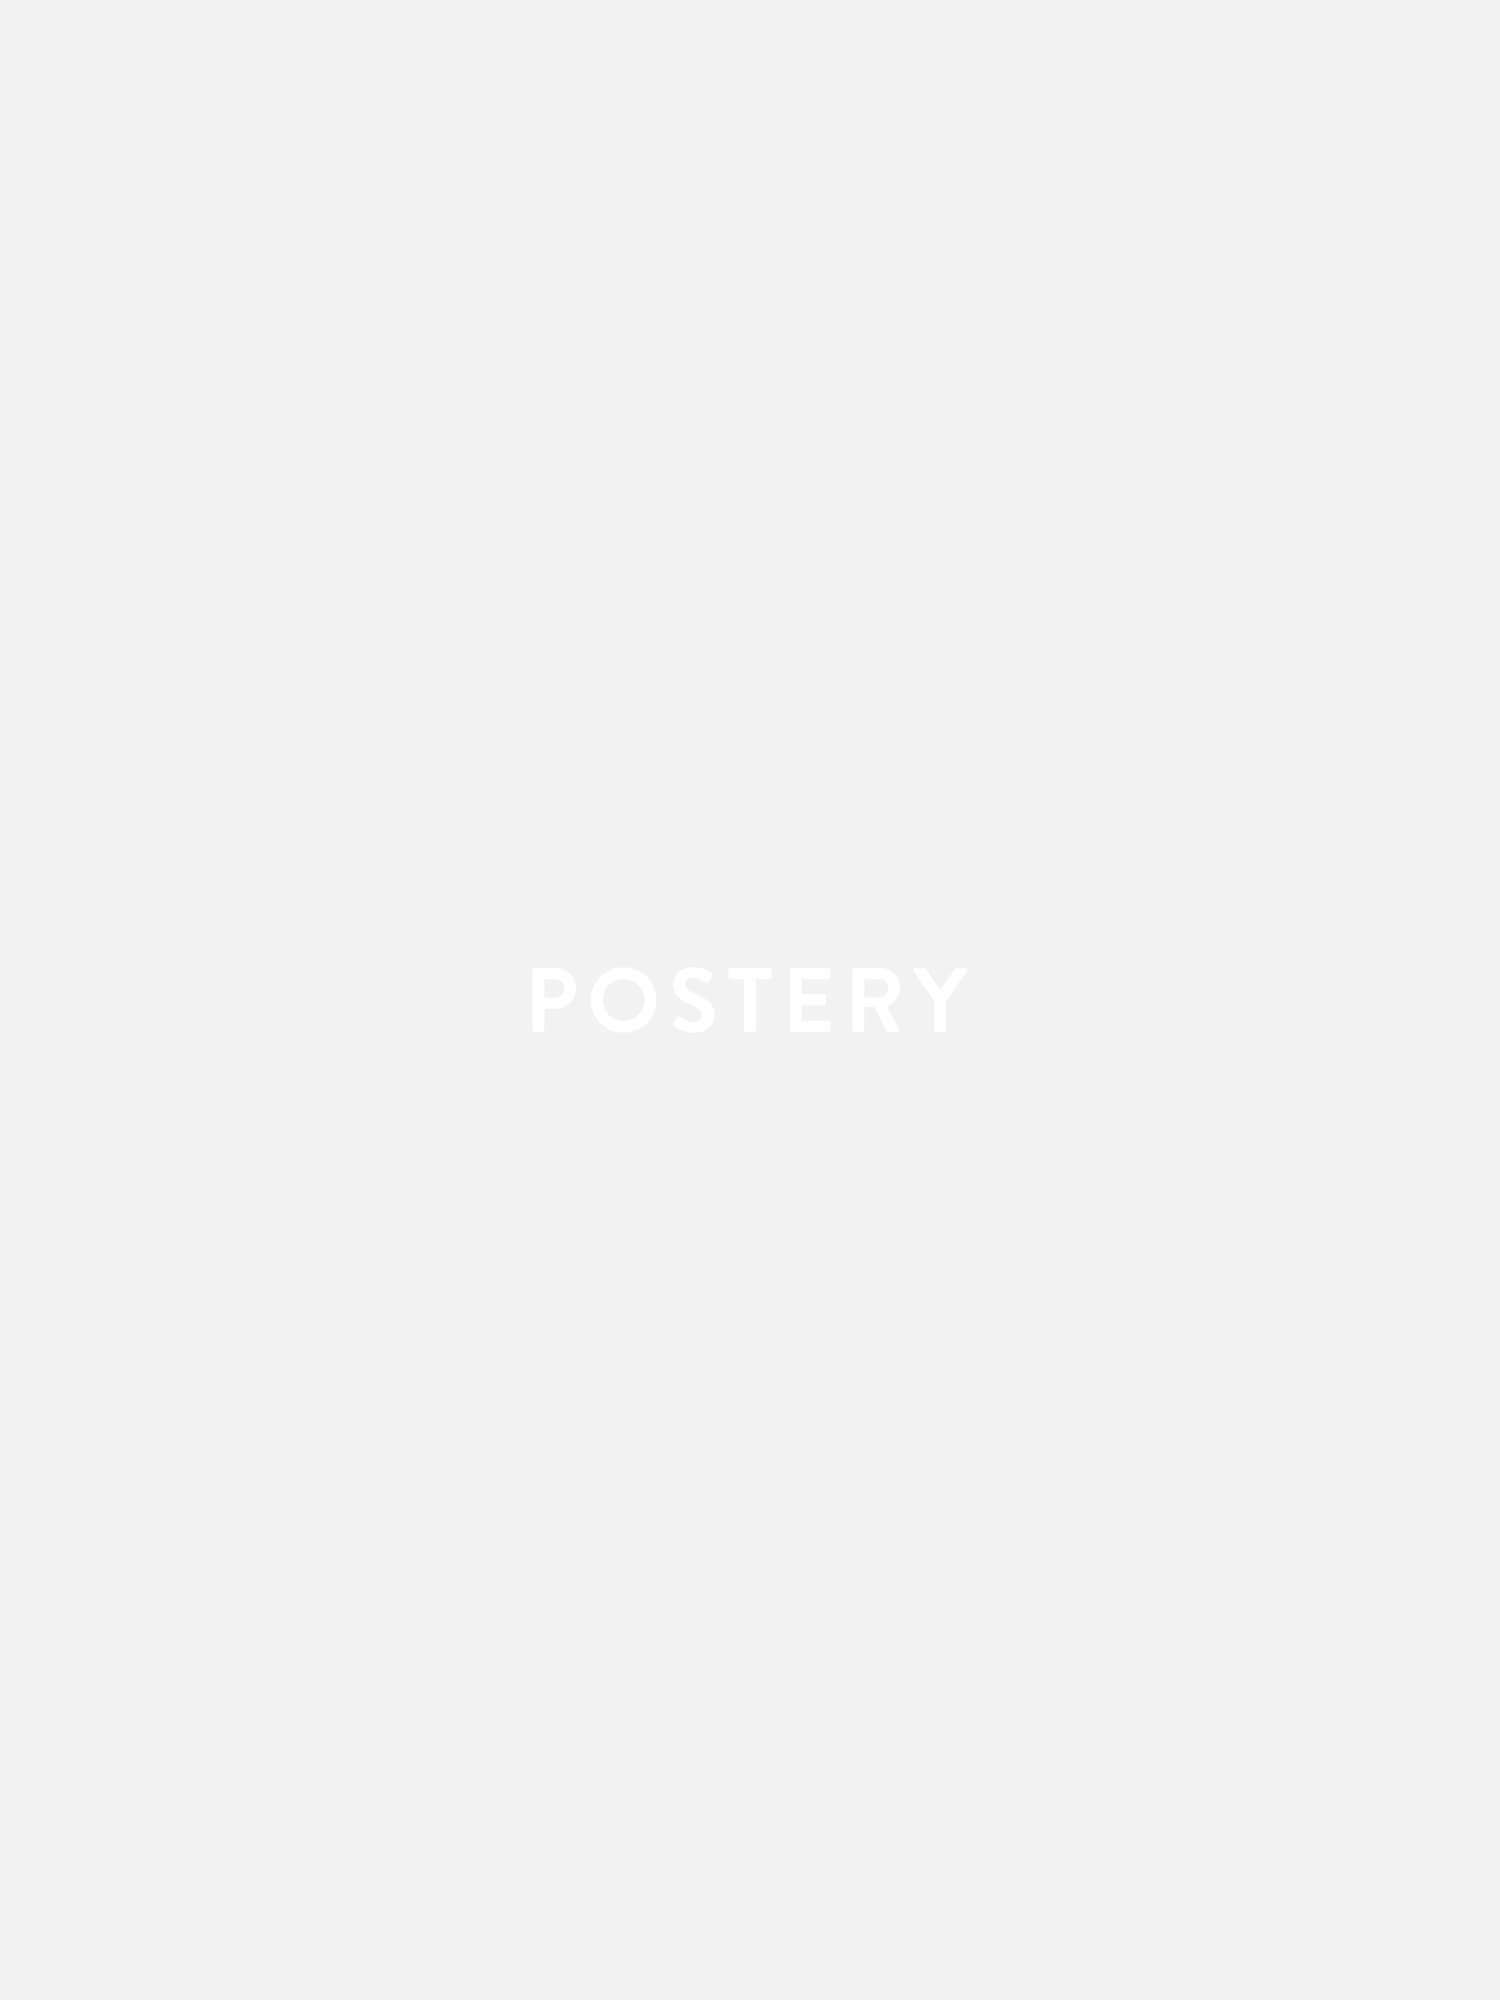 Animal Trace Poster